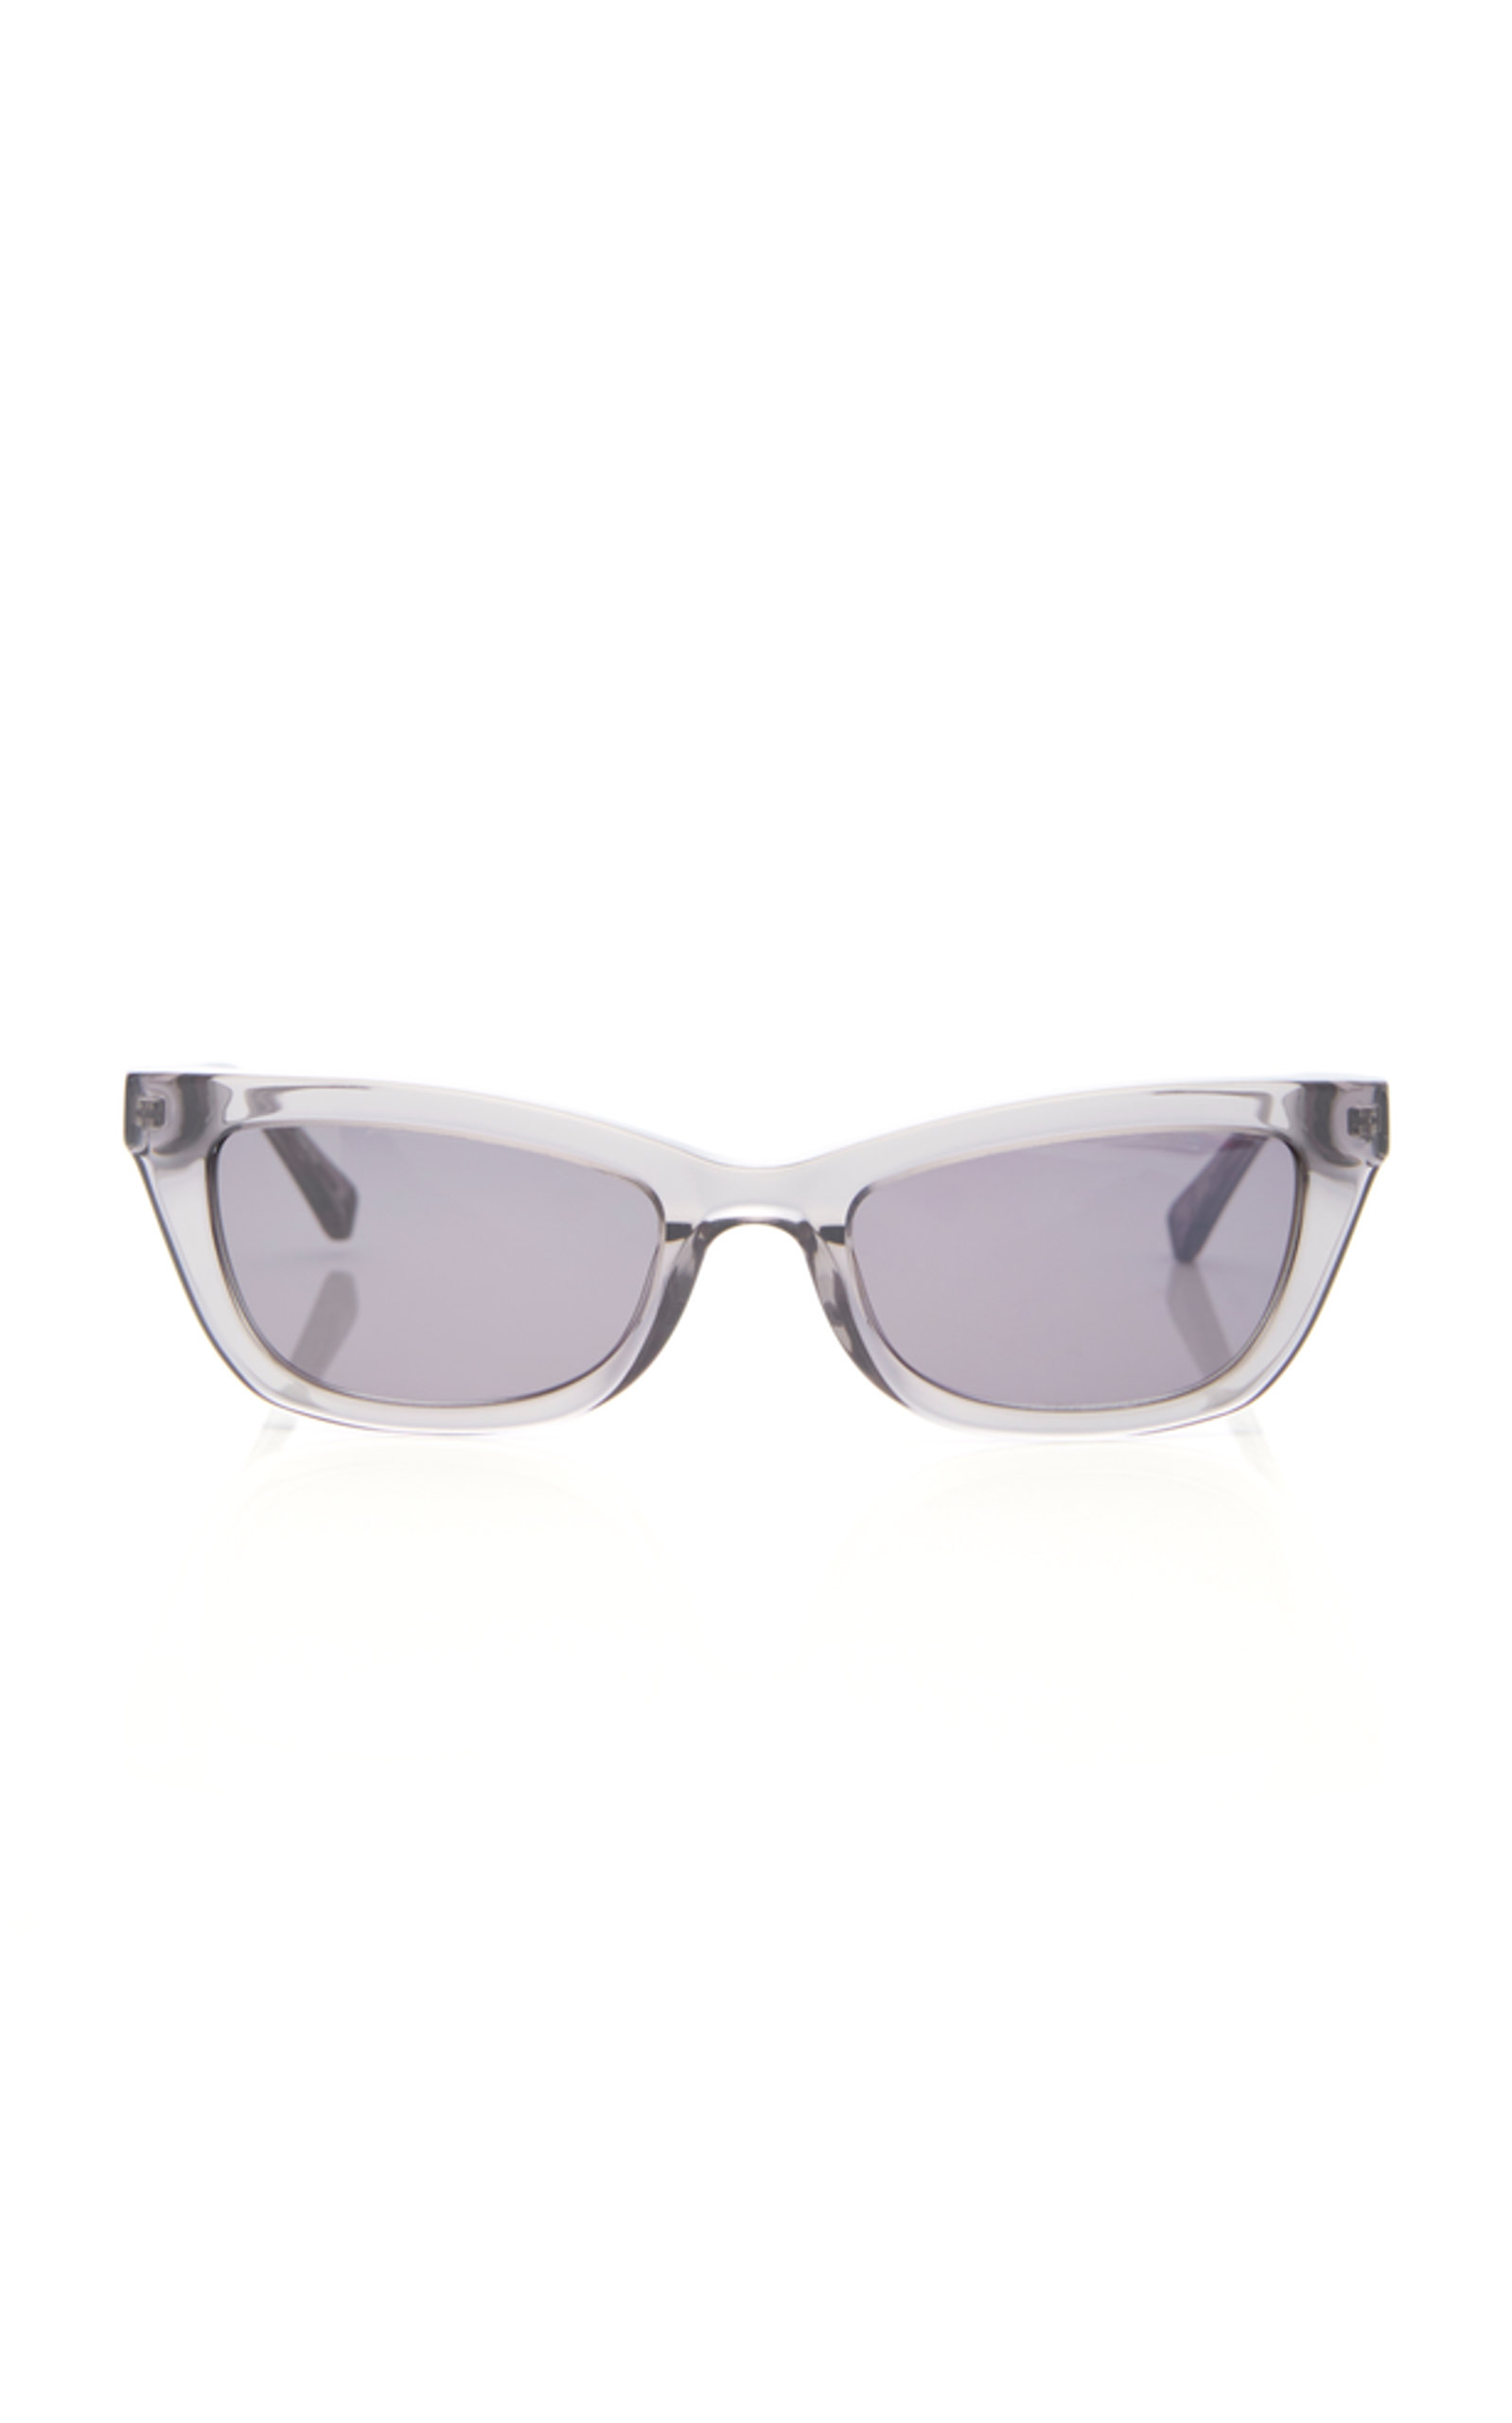 a918bc29a4 Katia Clear Square Cat-Eye Frame Sunglasses by Kate